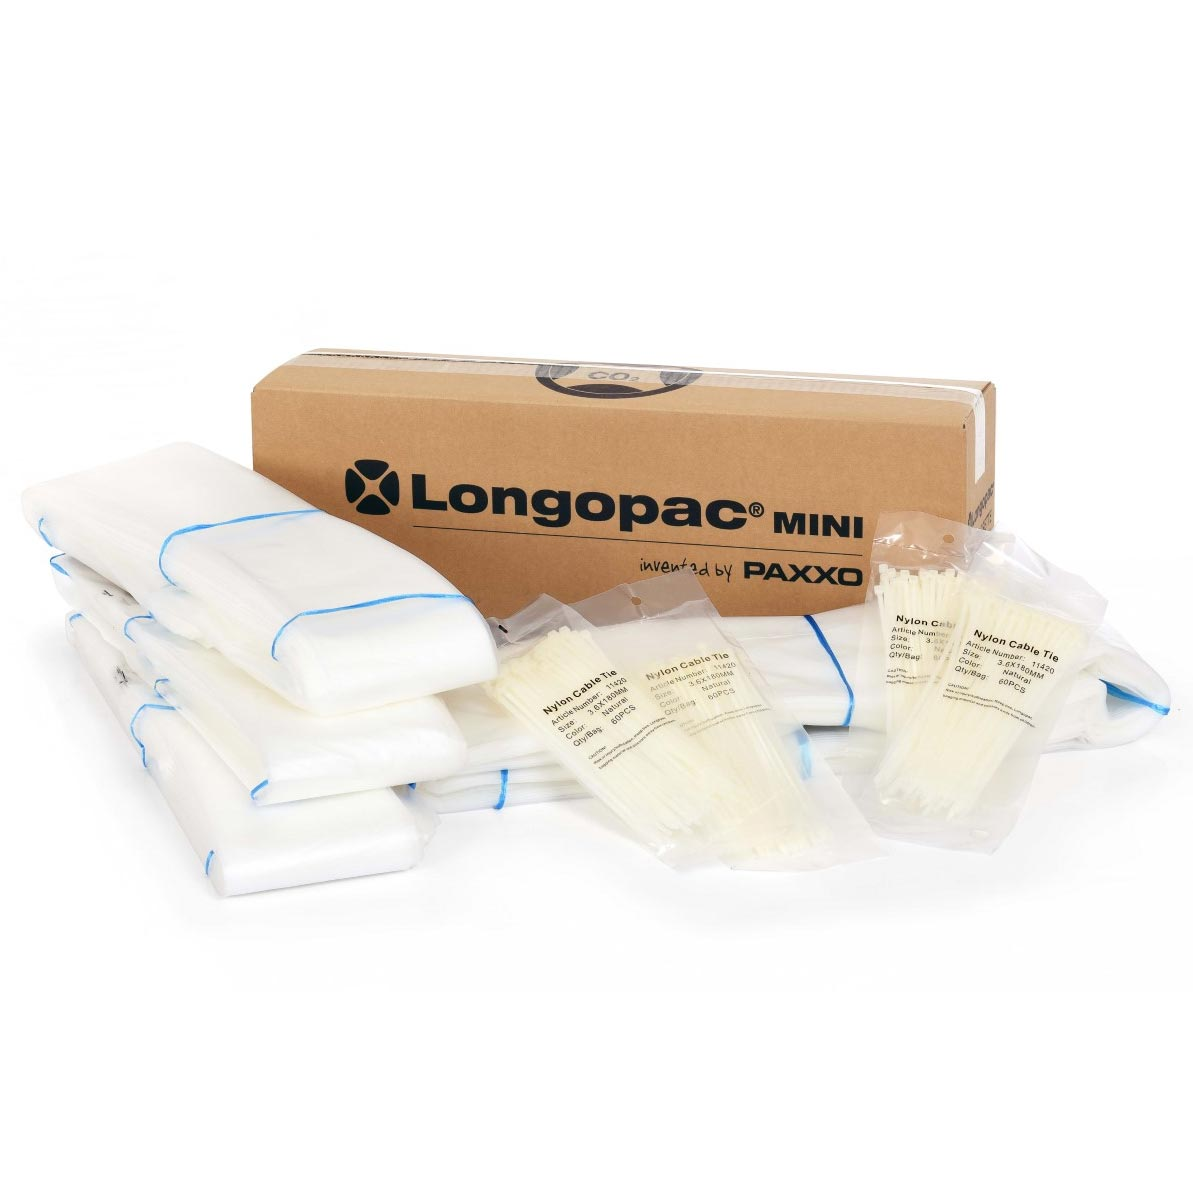 Ermator Longopac 4 Pack Refill 1376013 590429201 10-590429201 Freight Included